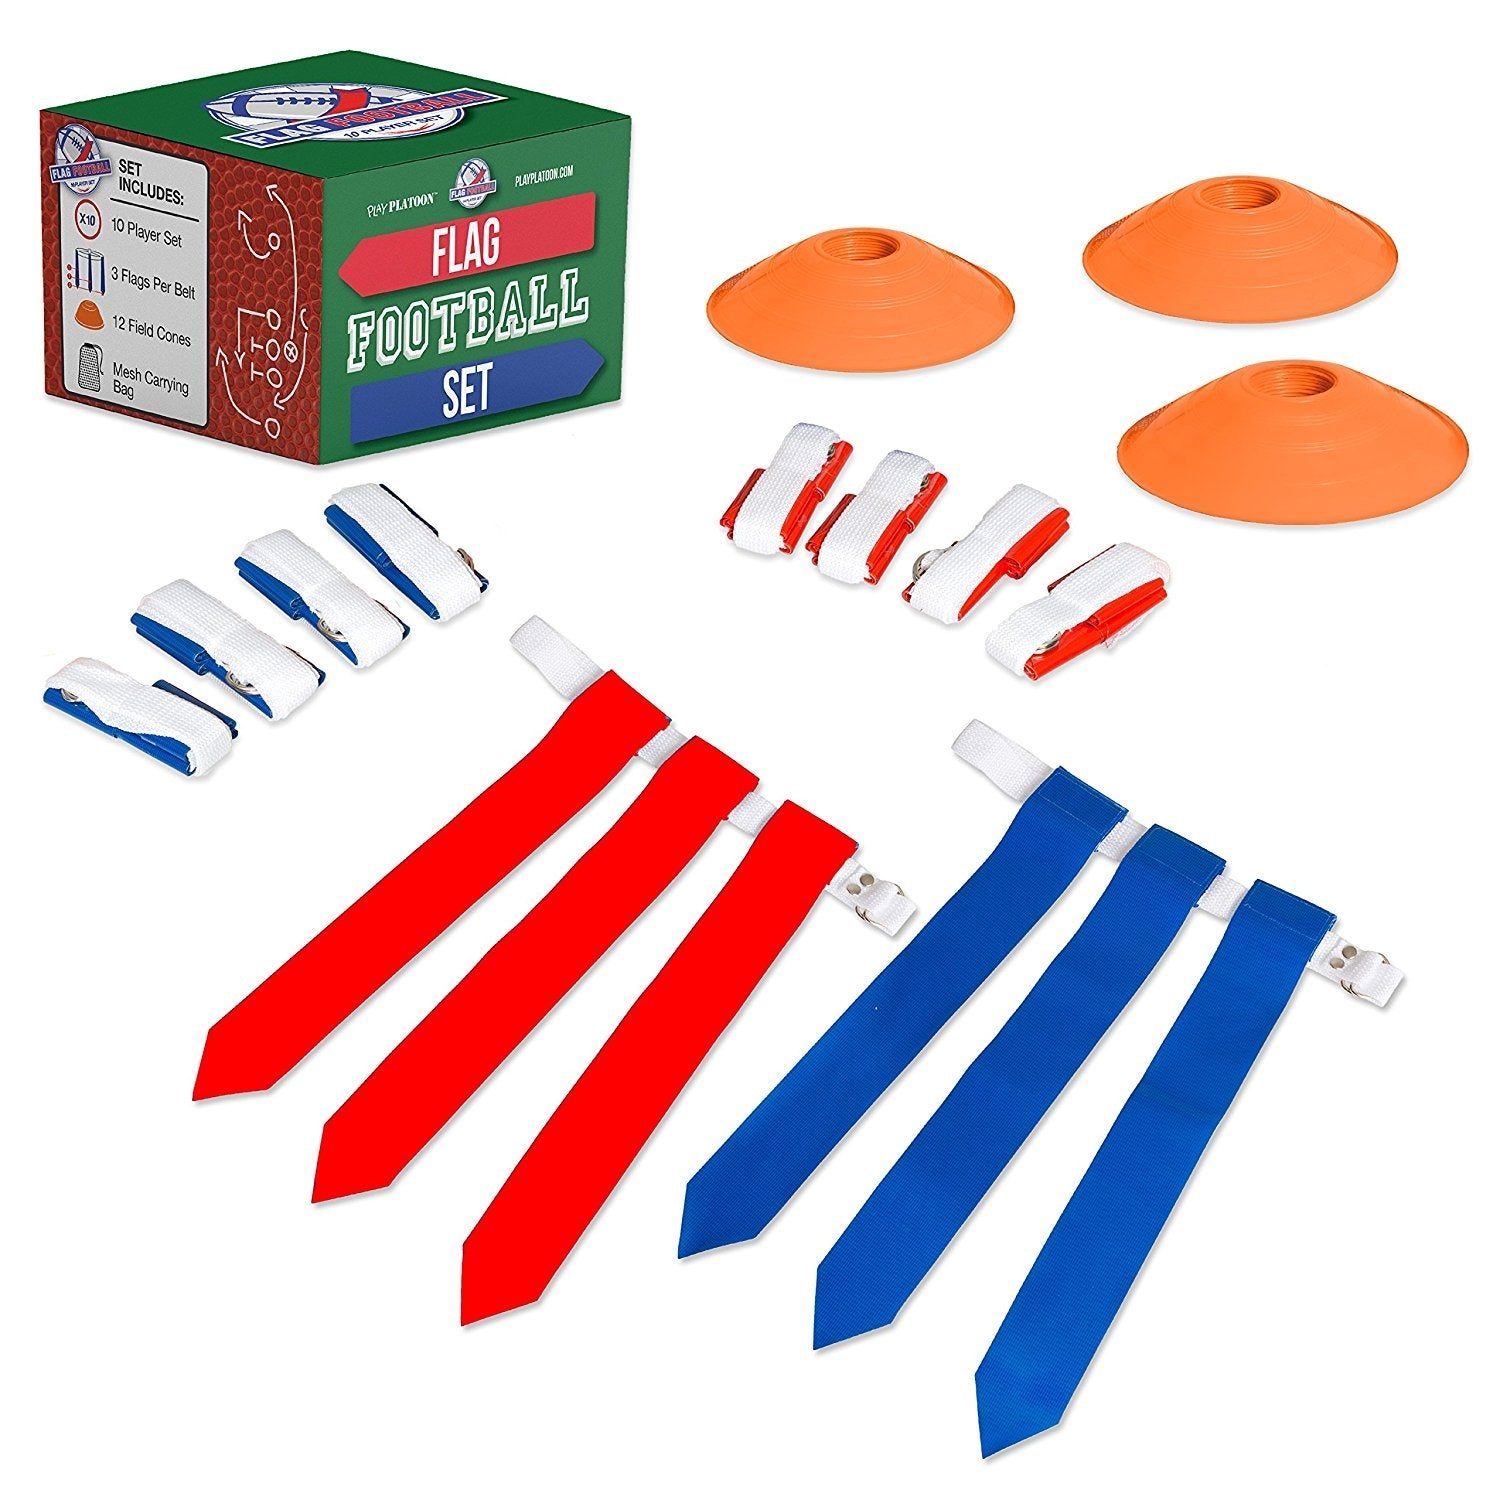 10 Player Flag Football Deluxe Set